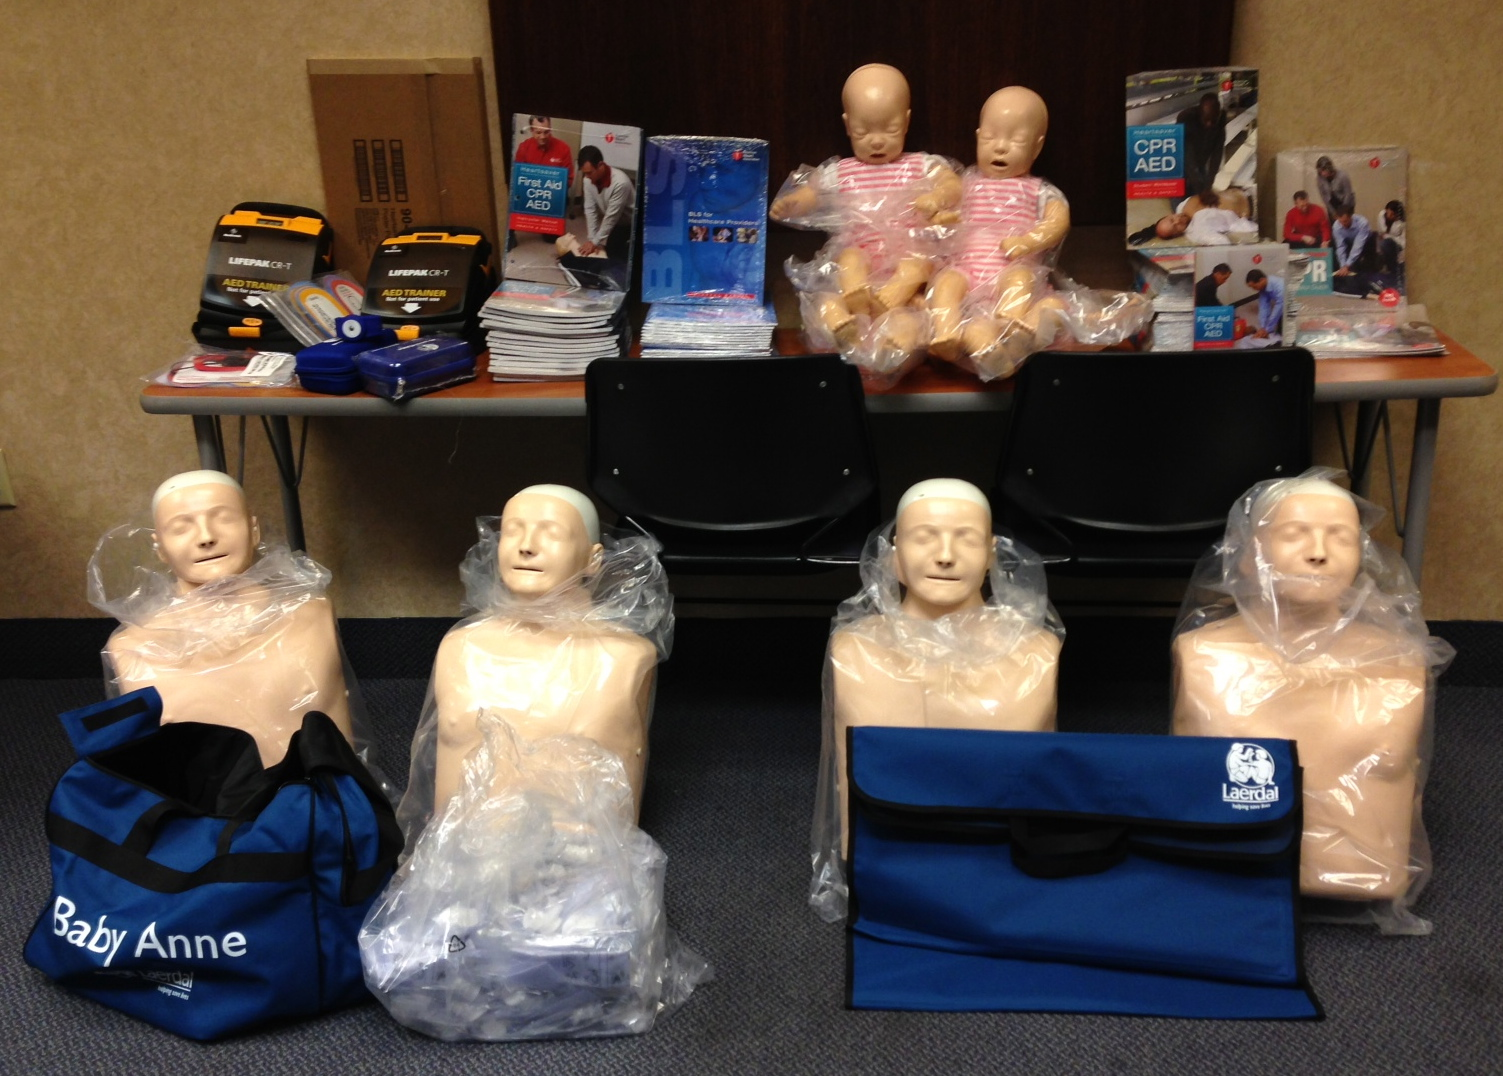 Training Cpr Aed Classes Narberth Ambulance